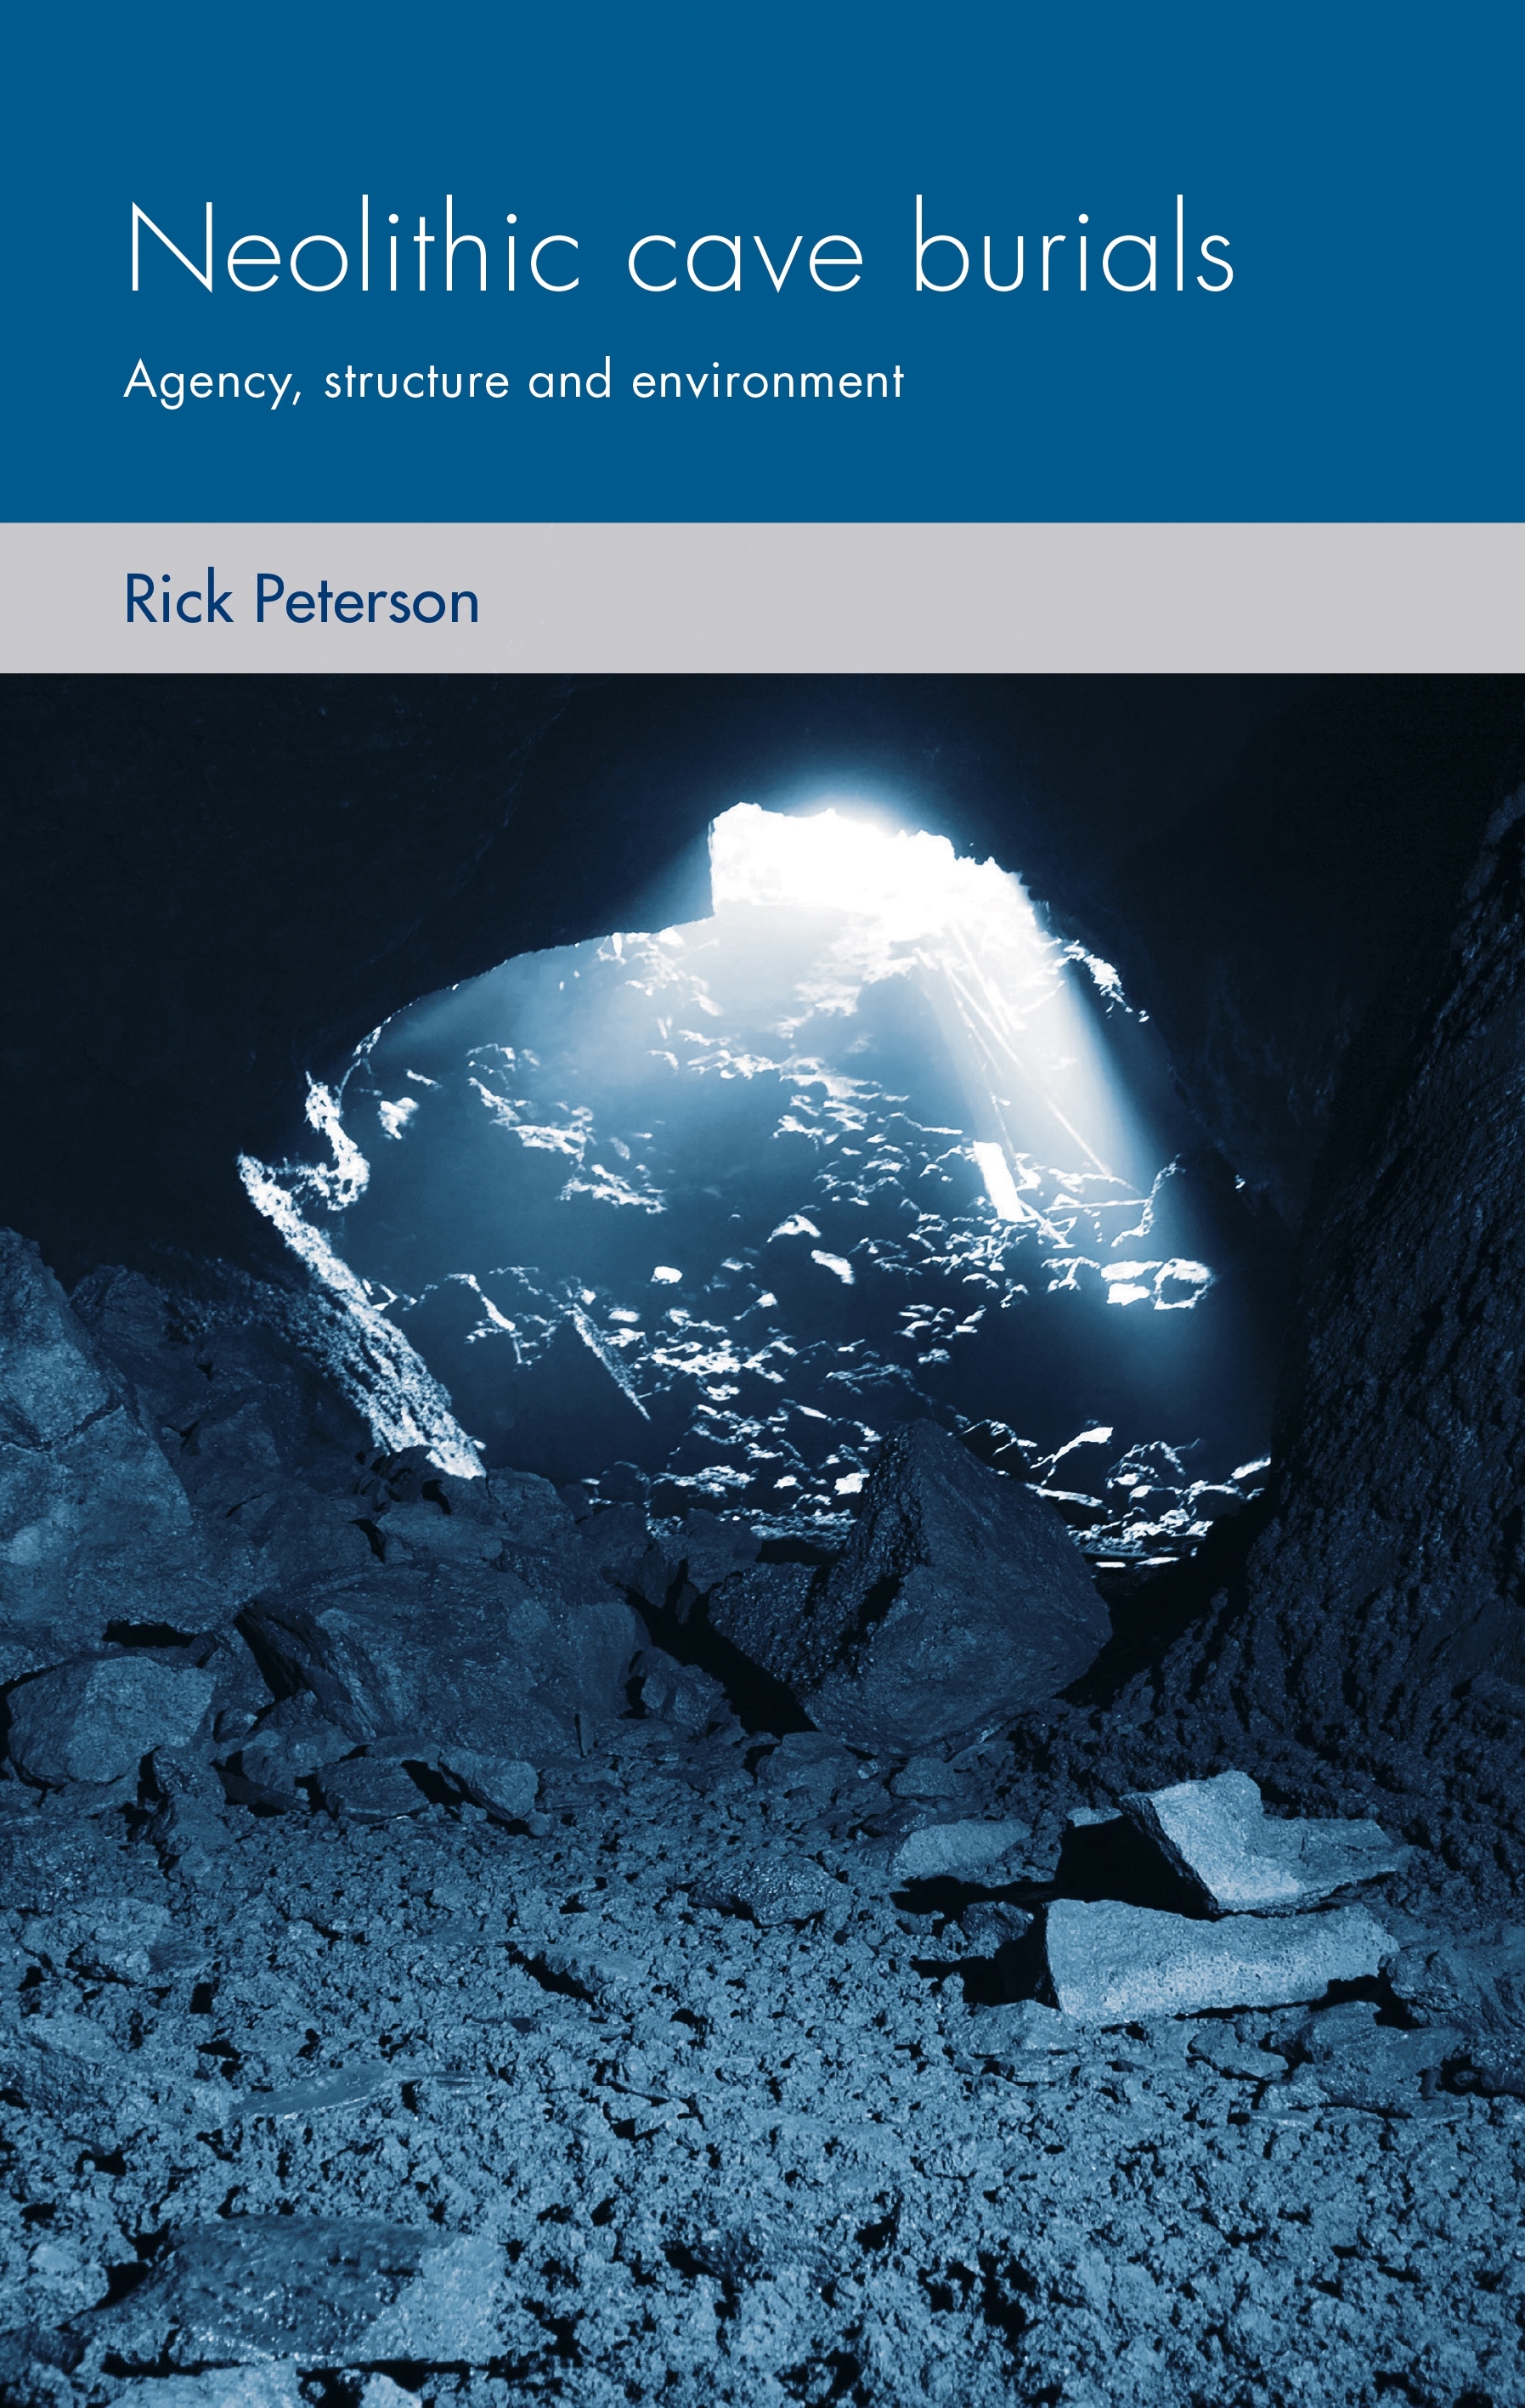 Neolithic cave burials – Q&A with Rick Peterson